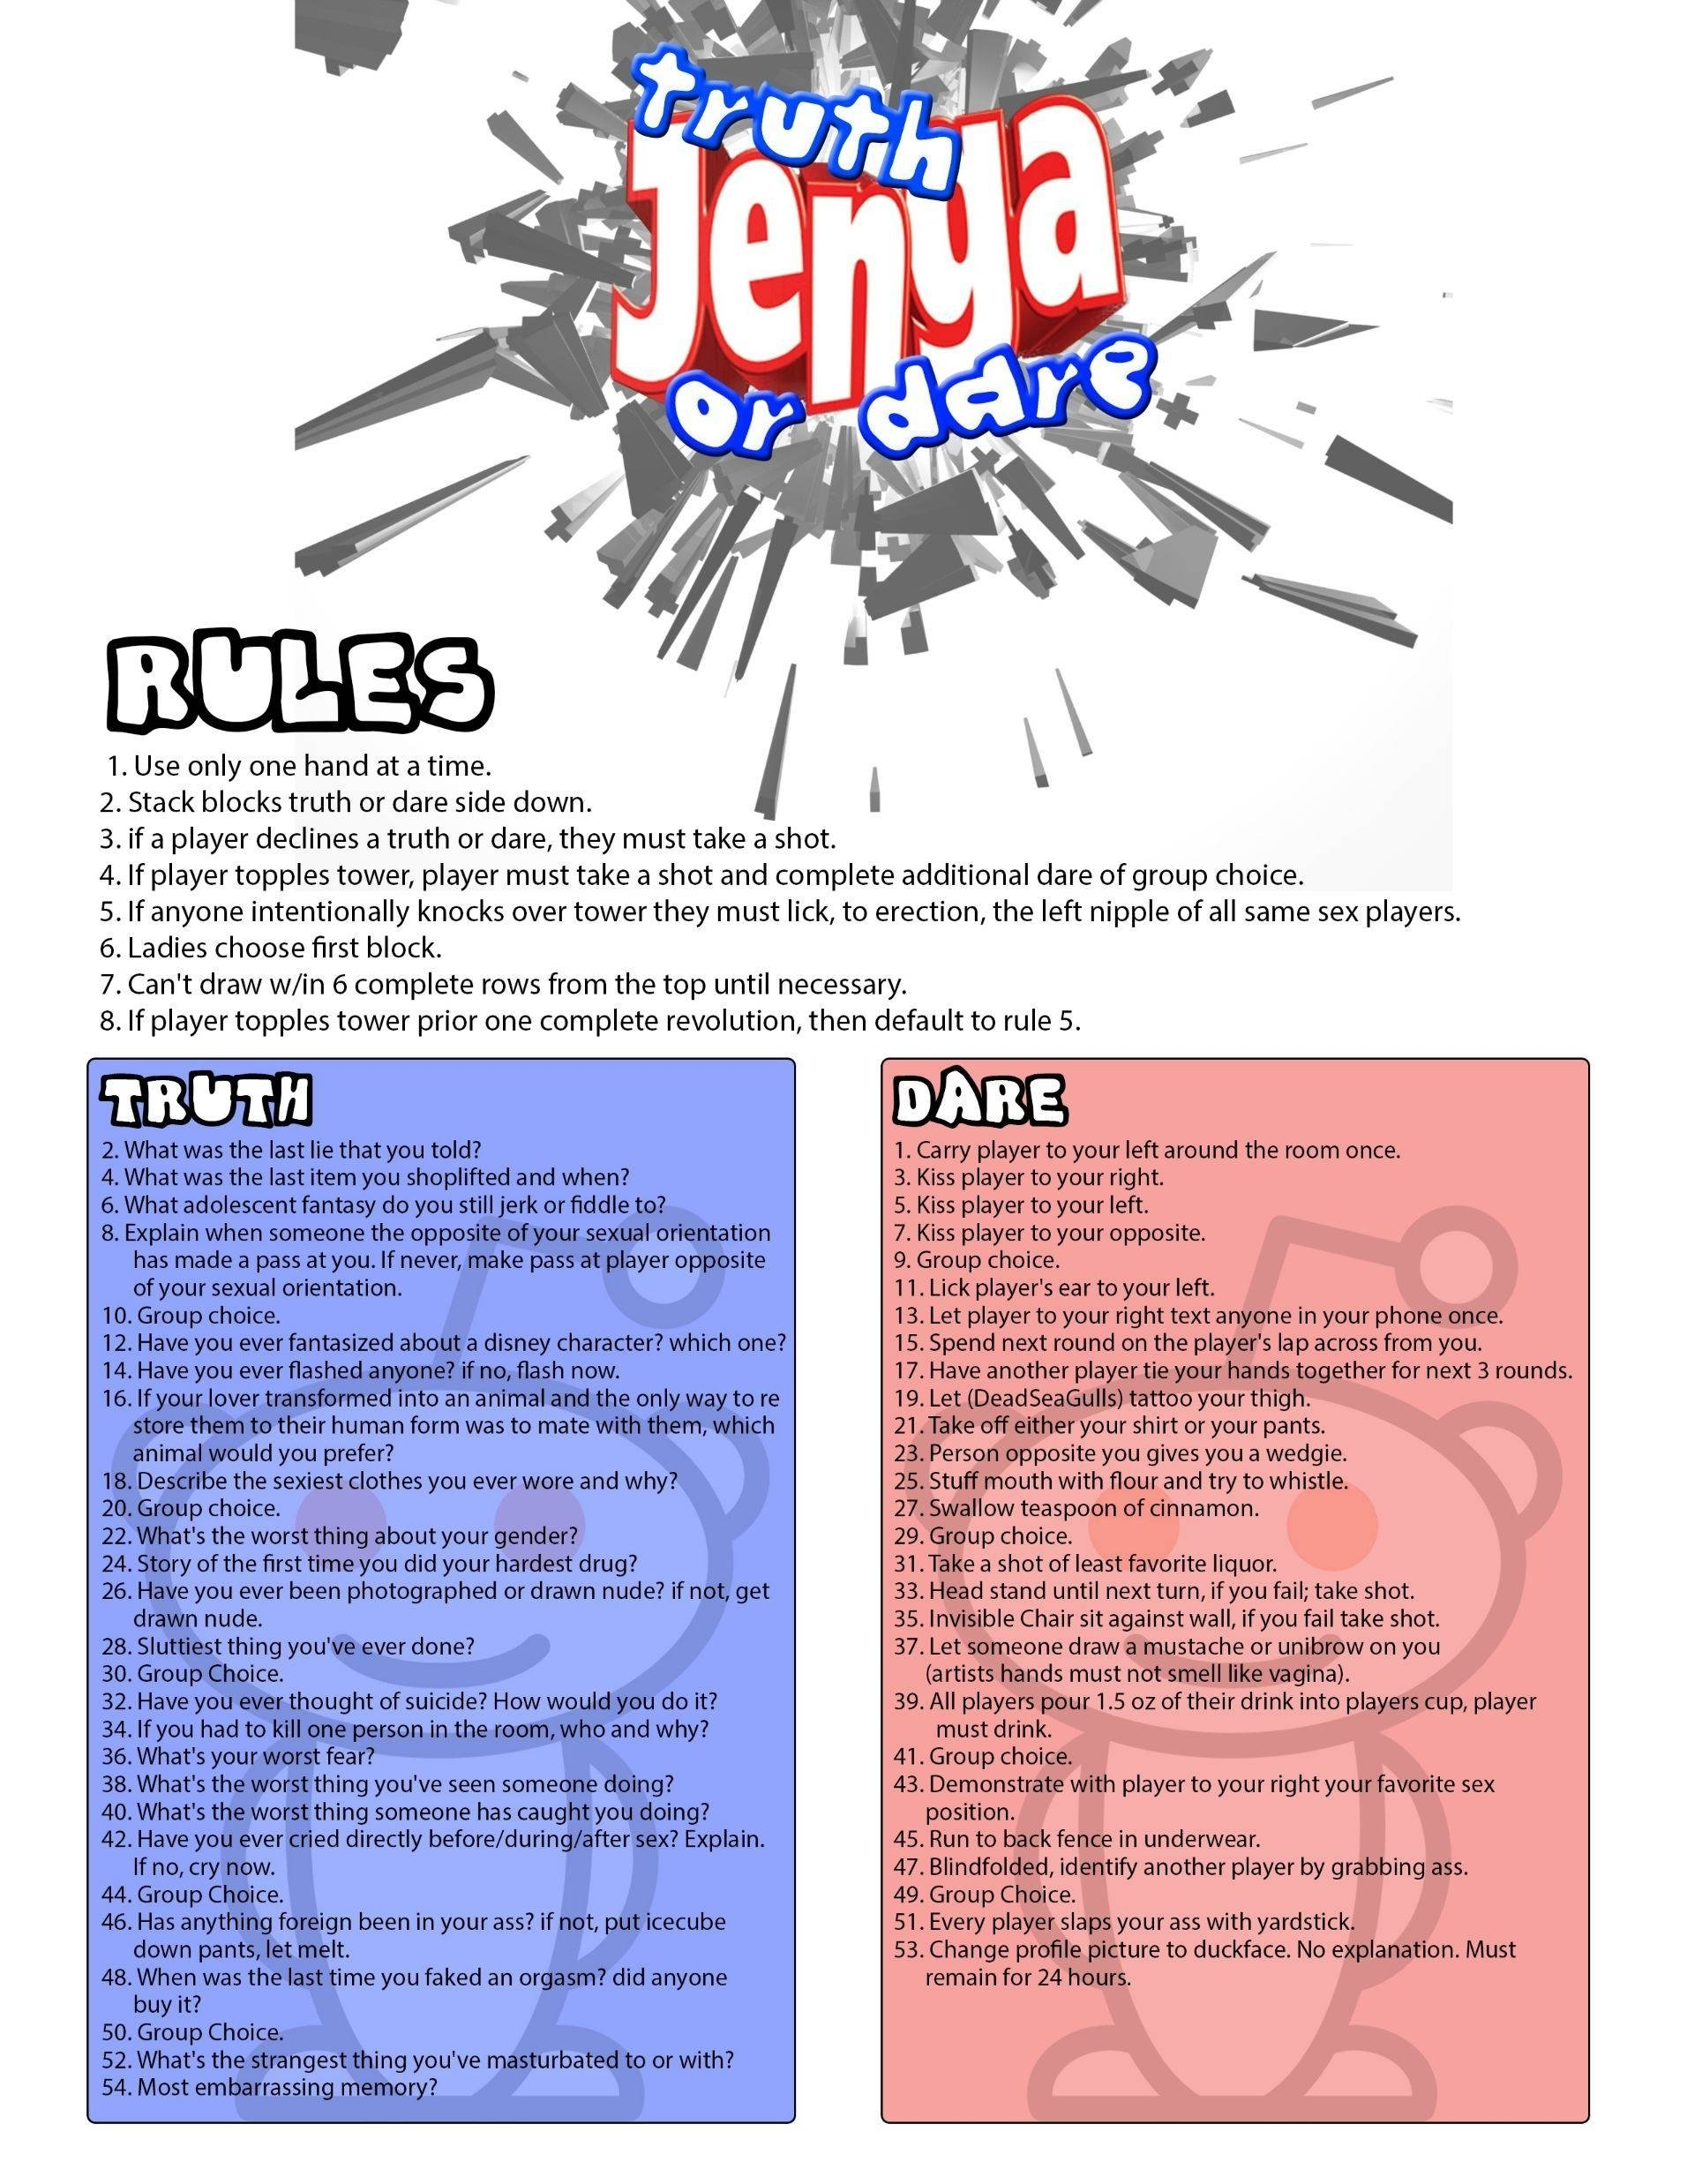 10 Ideal Dare Ideas For Truth Or Dare as requested truth dare jenga adult edition pics 1 2020